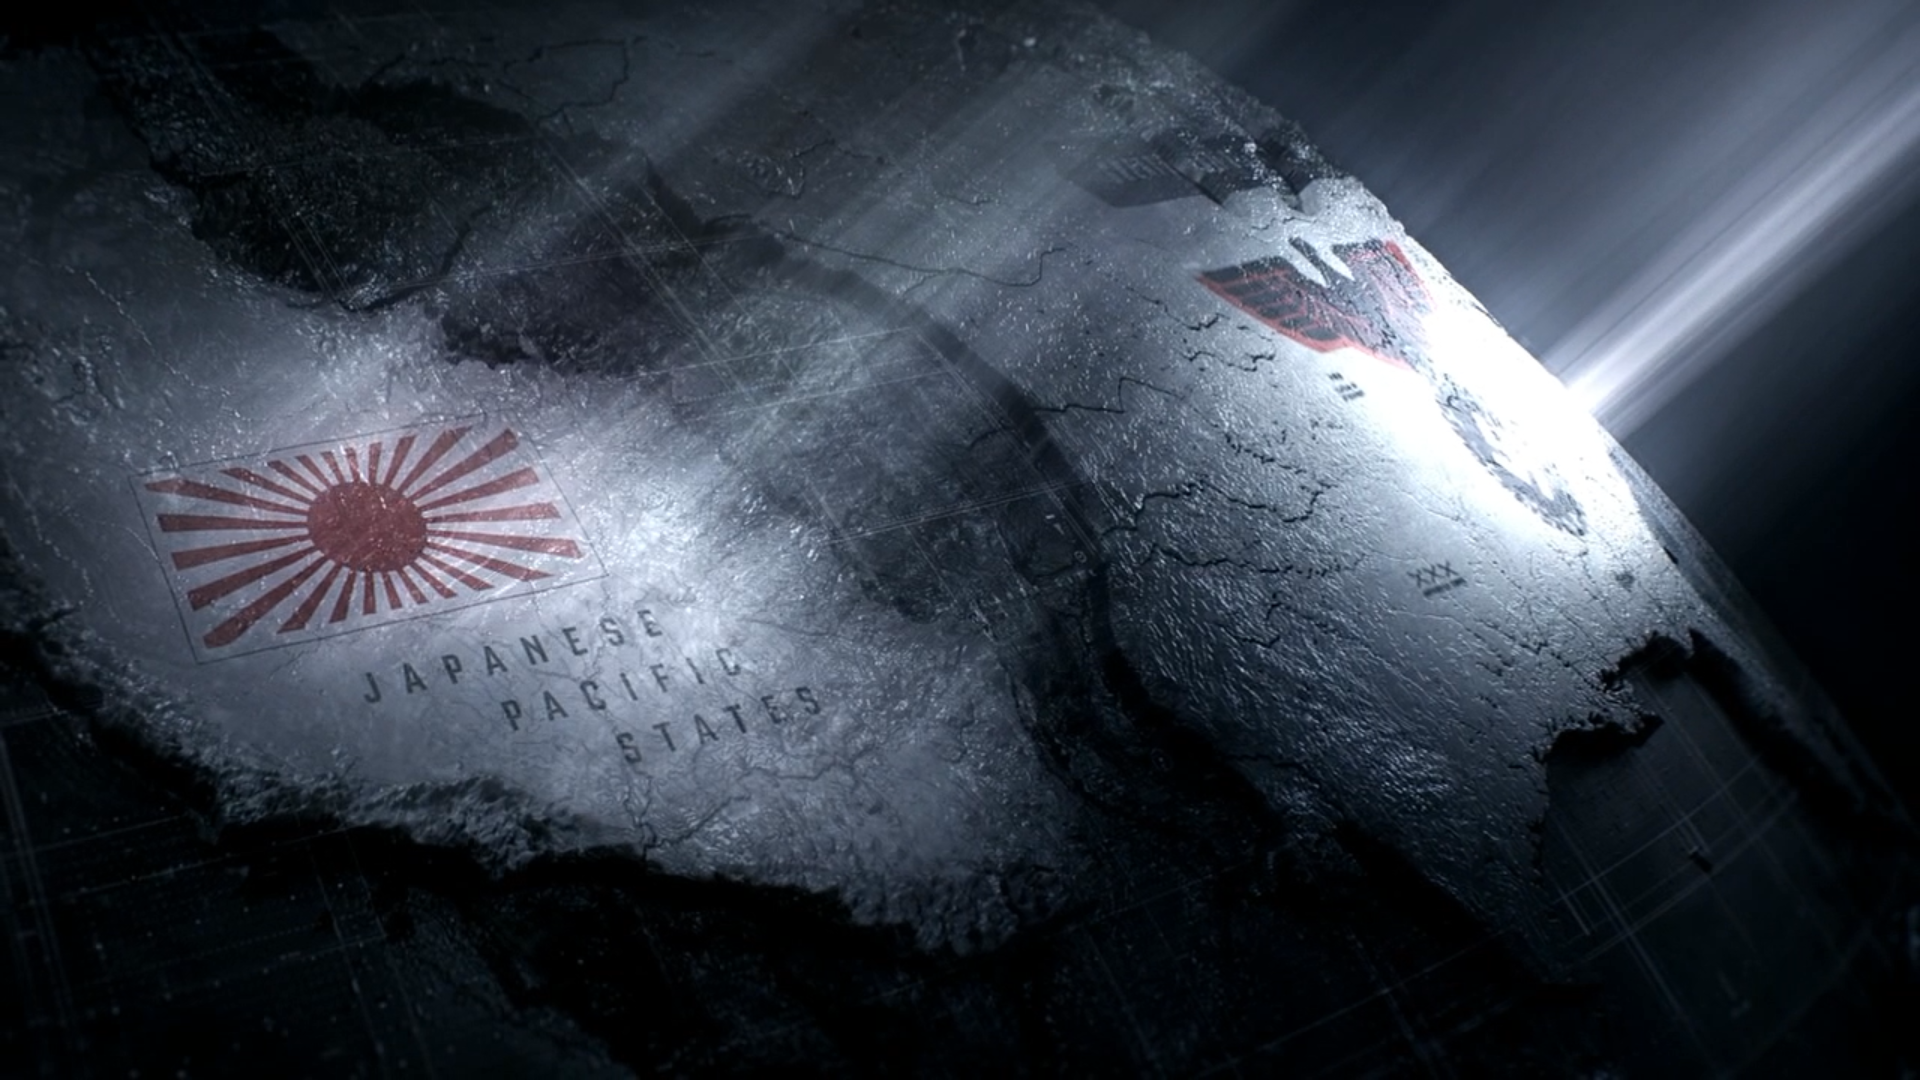 The Man In The High Castle Depicts America Under The Nazis